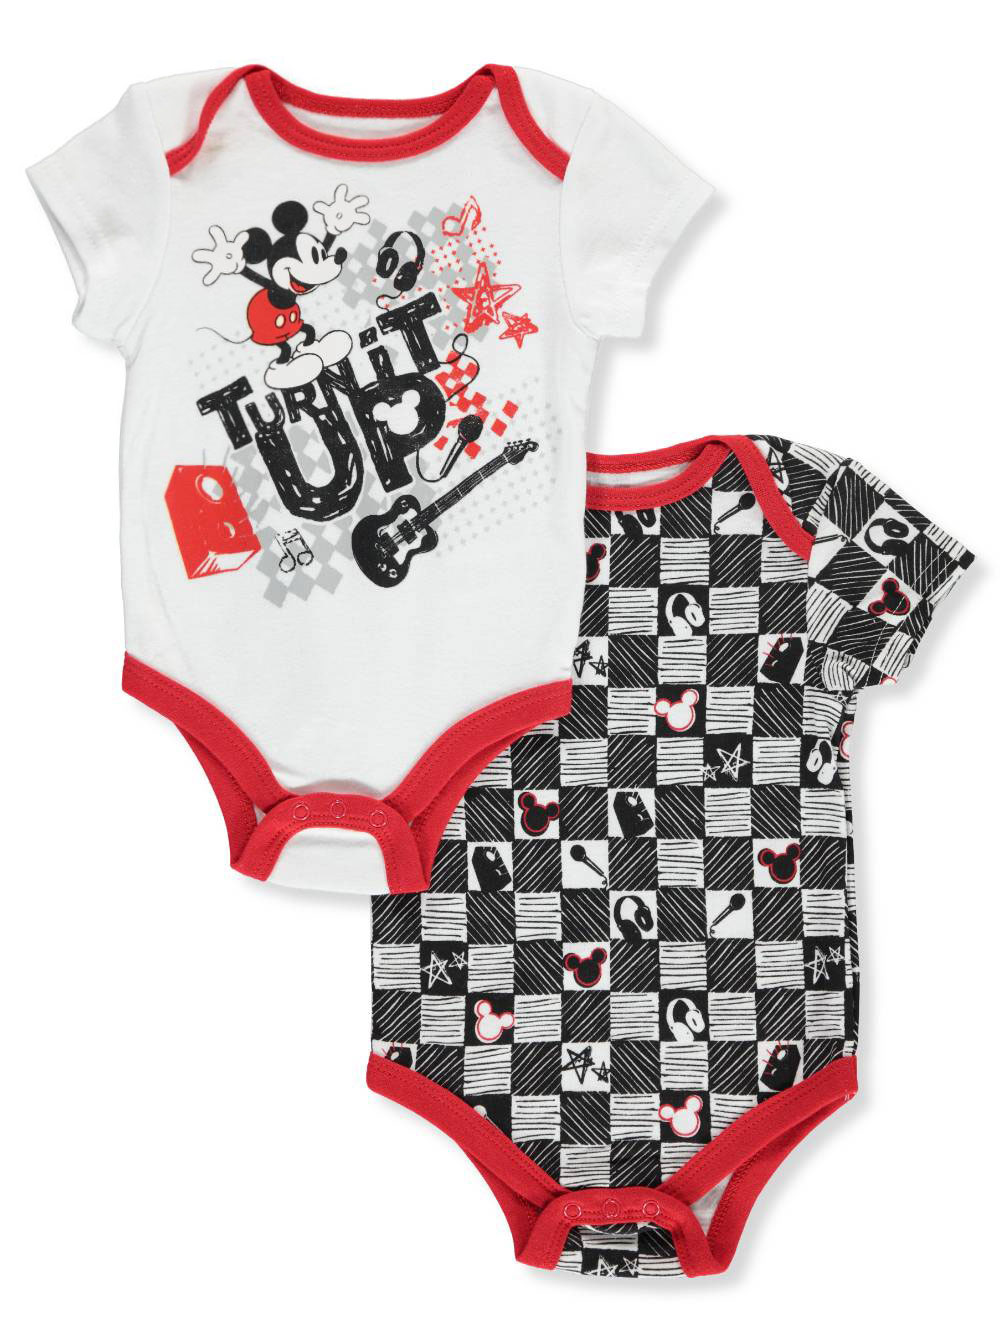 d5dfa2e5cf0 Mickey Mouse Baby Boys' 2-Pack Bodysuits by Disney in White/multi from  Cookie's Kids